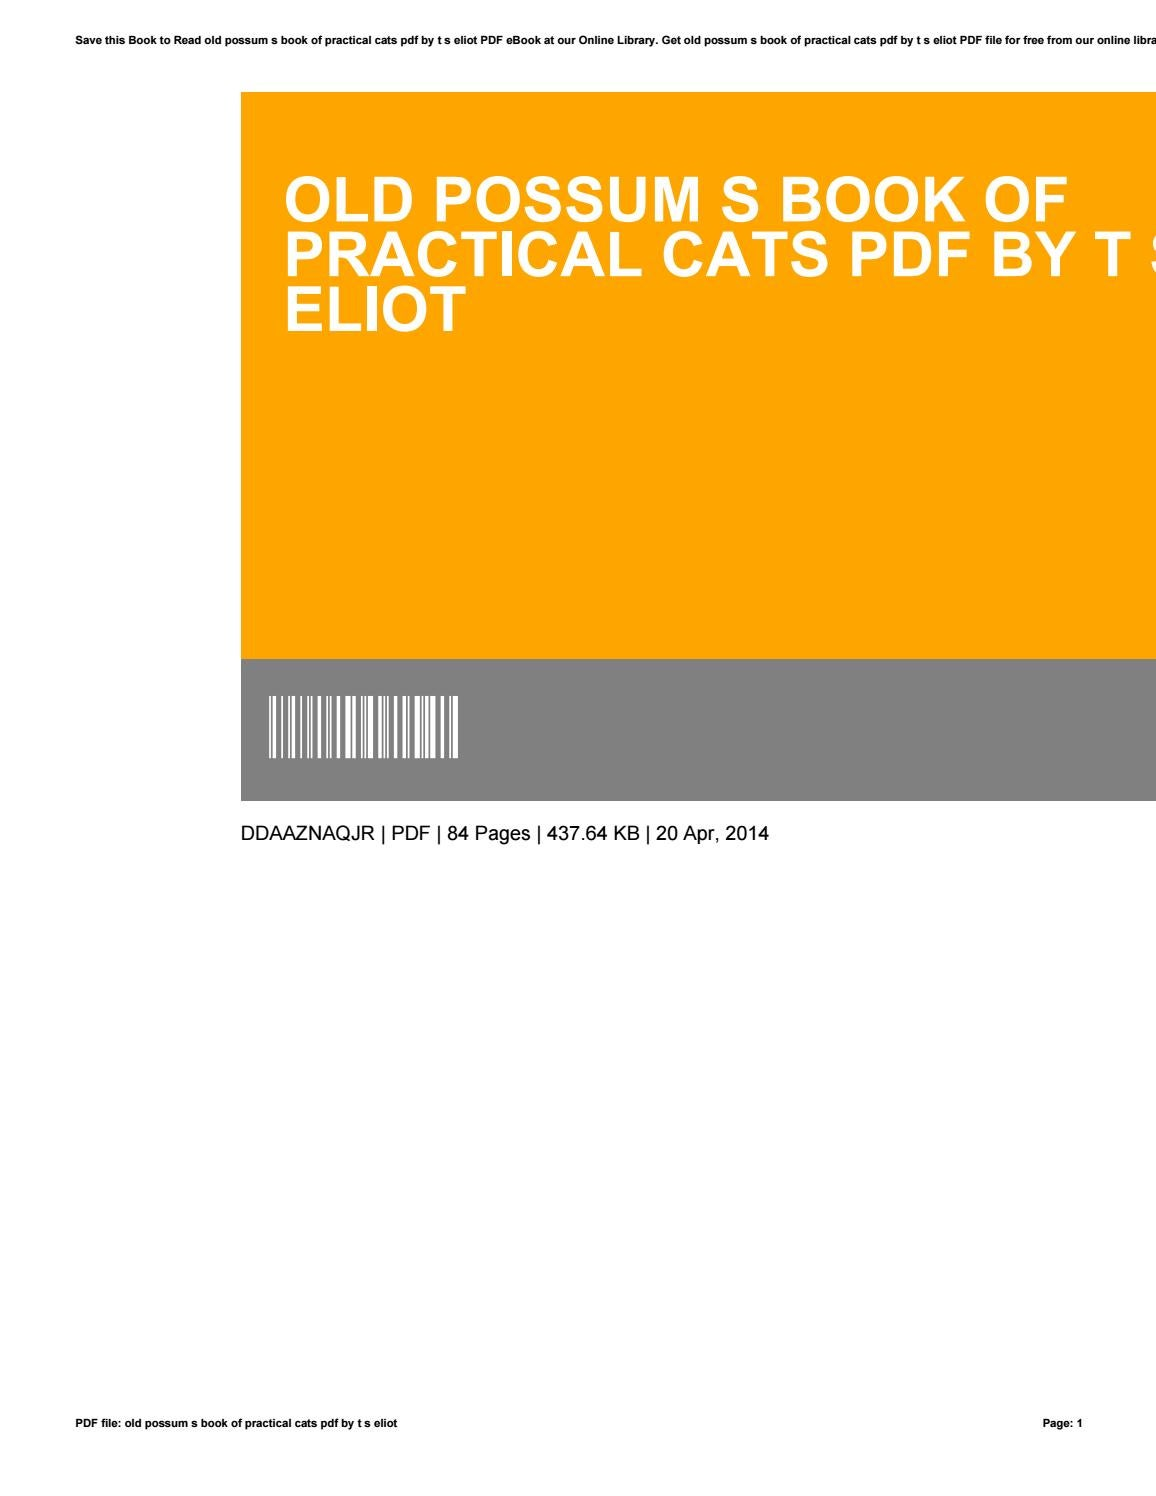 Old Possum S Book Of Practical Cats Pdf